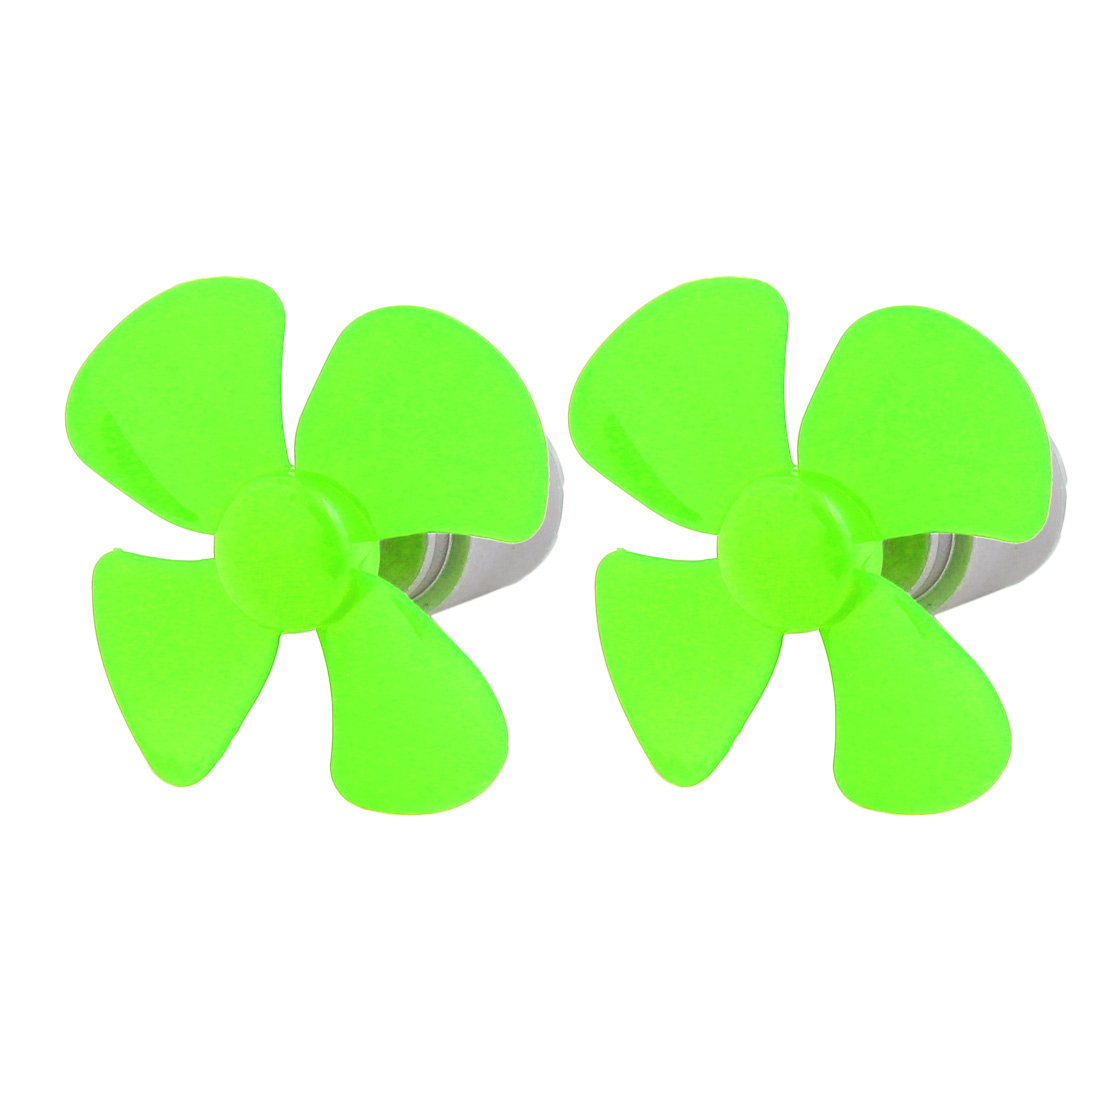 2pcs DC 3V 0.15A 11000RPM Green Strong Force Motor 4 Vanes 56mm Dia Propeller for RC Aircraft